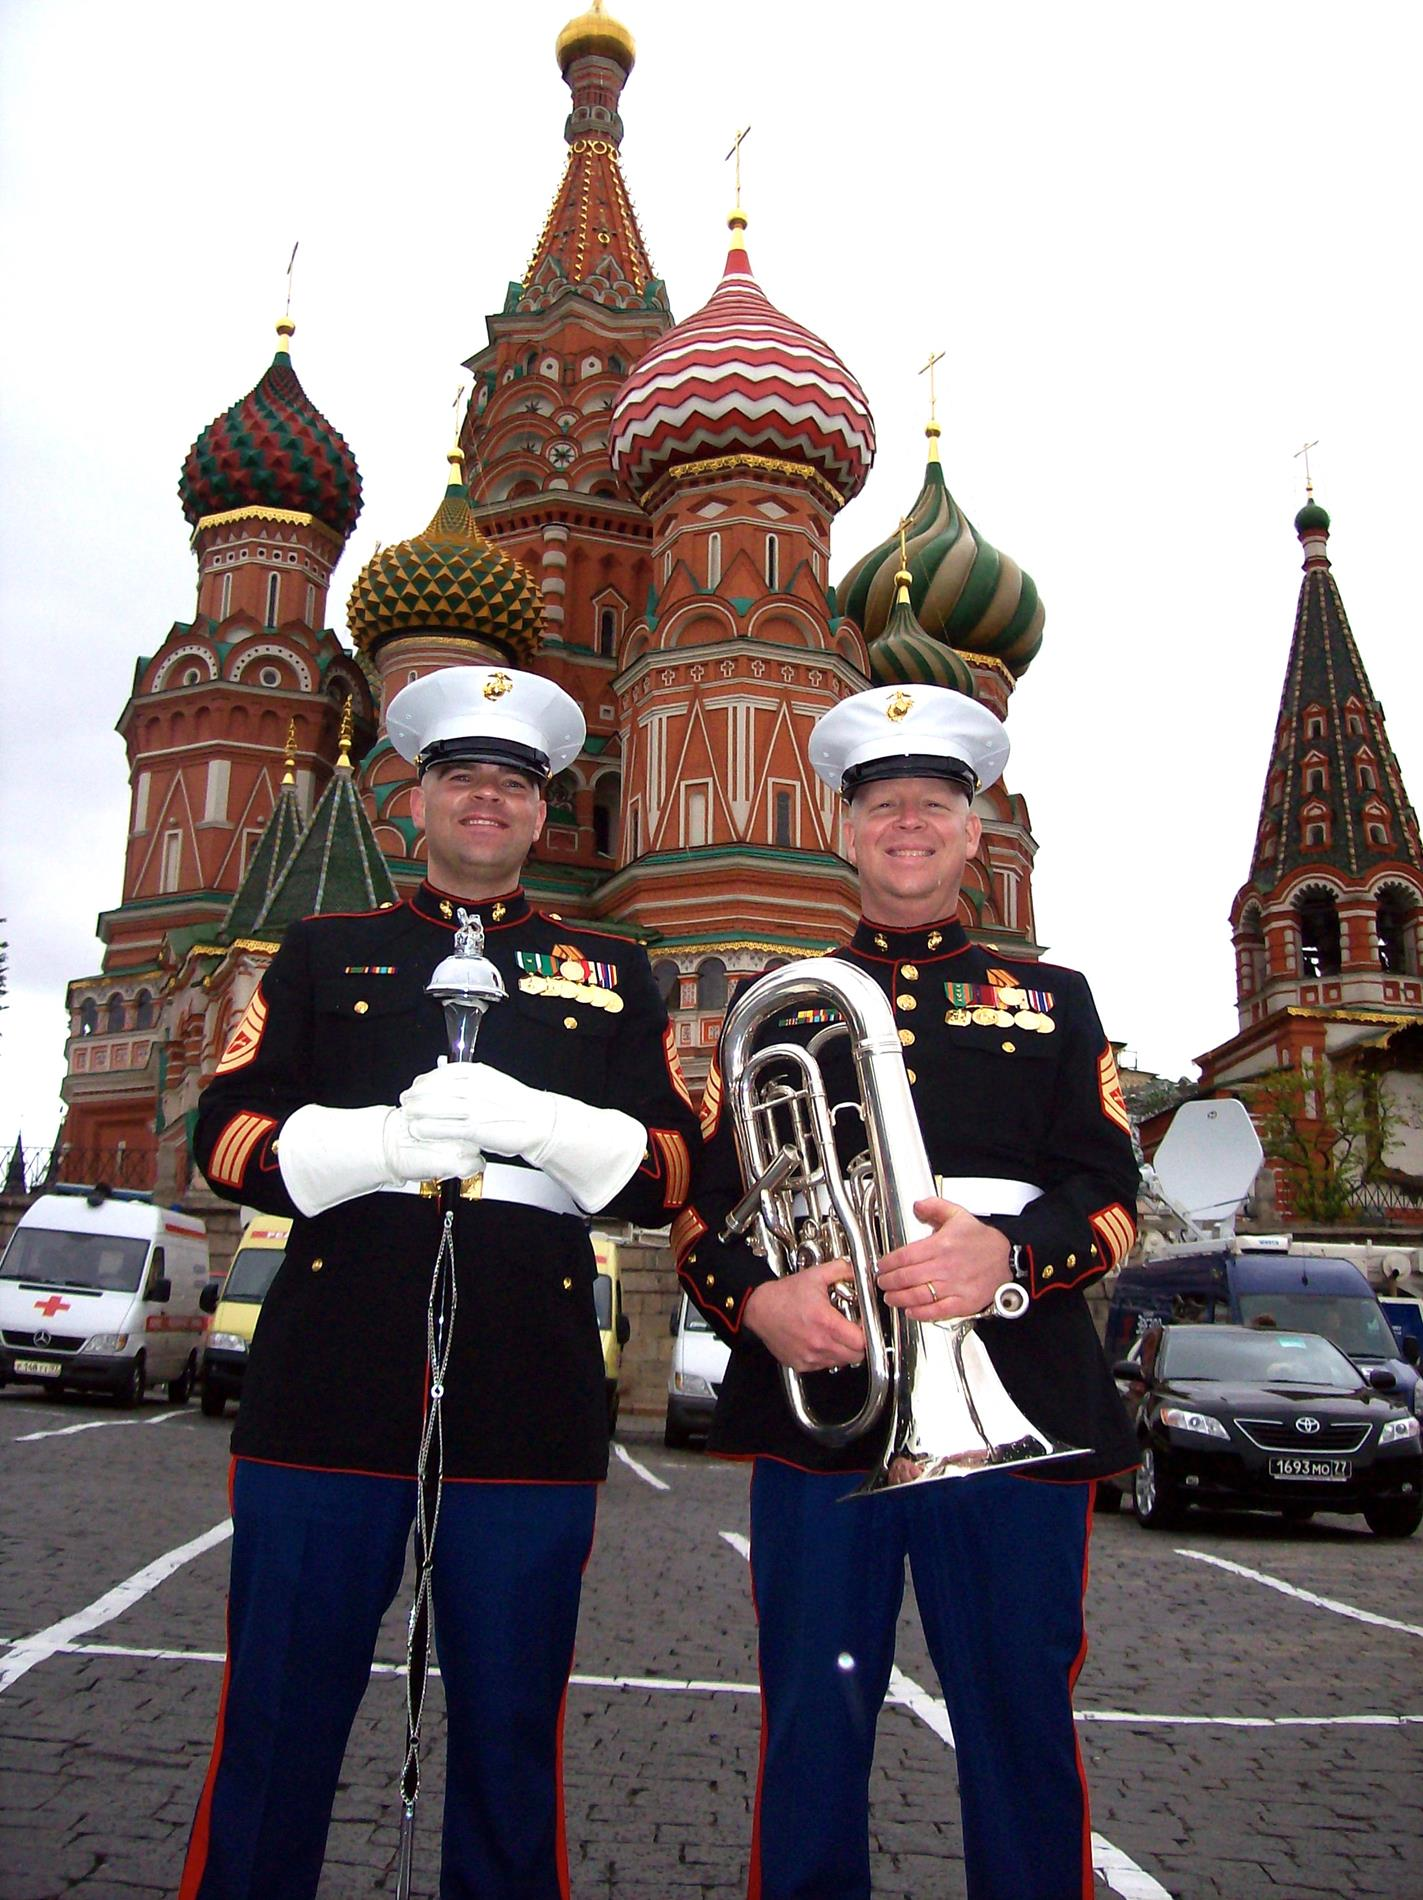 Just outside the Red Square in Moscow. Ben and I were the first two US Marines to ever march on Red Square. He was first as Drum Major, I was 6 steps behind him marching guide for the block. This was when I was stationed in Naples Italy with the Navy NATO Band 2010.